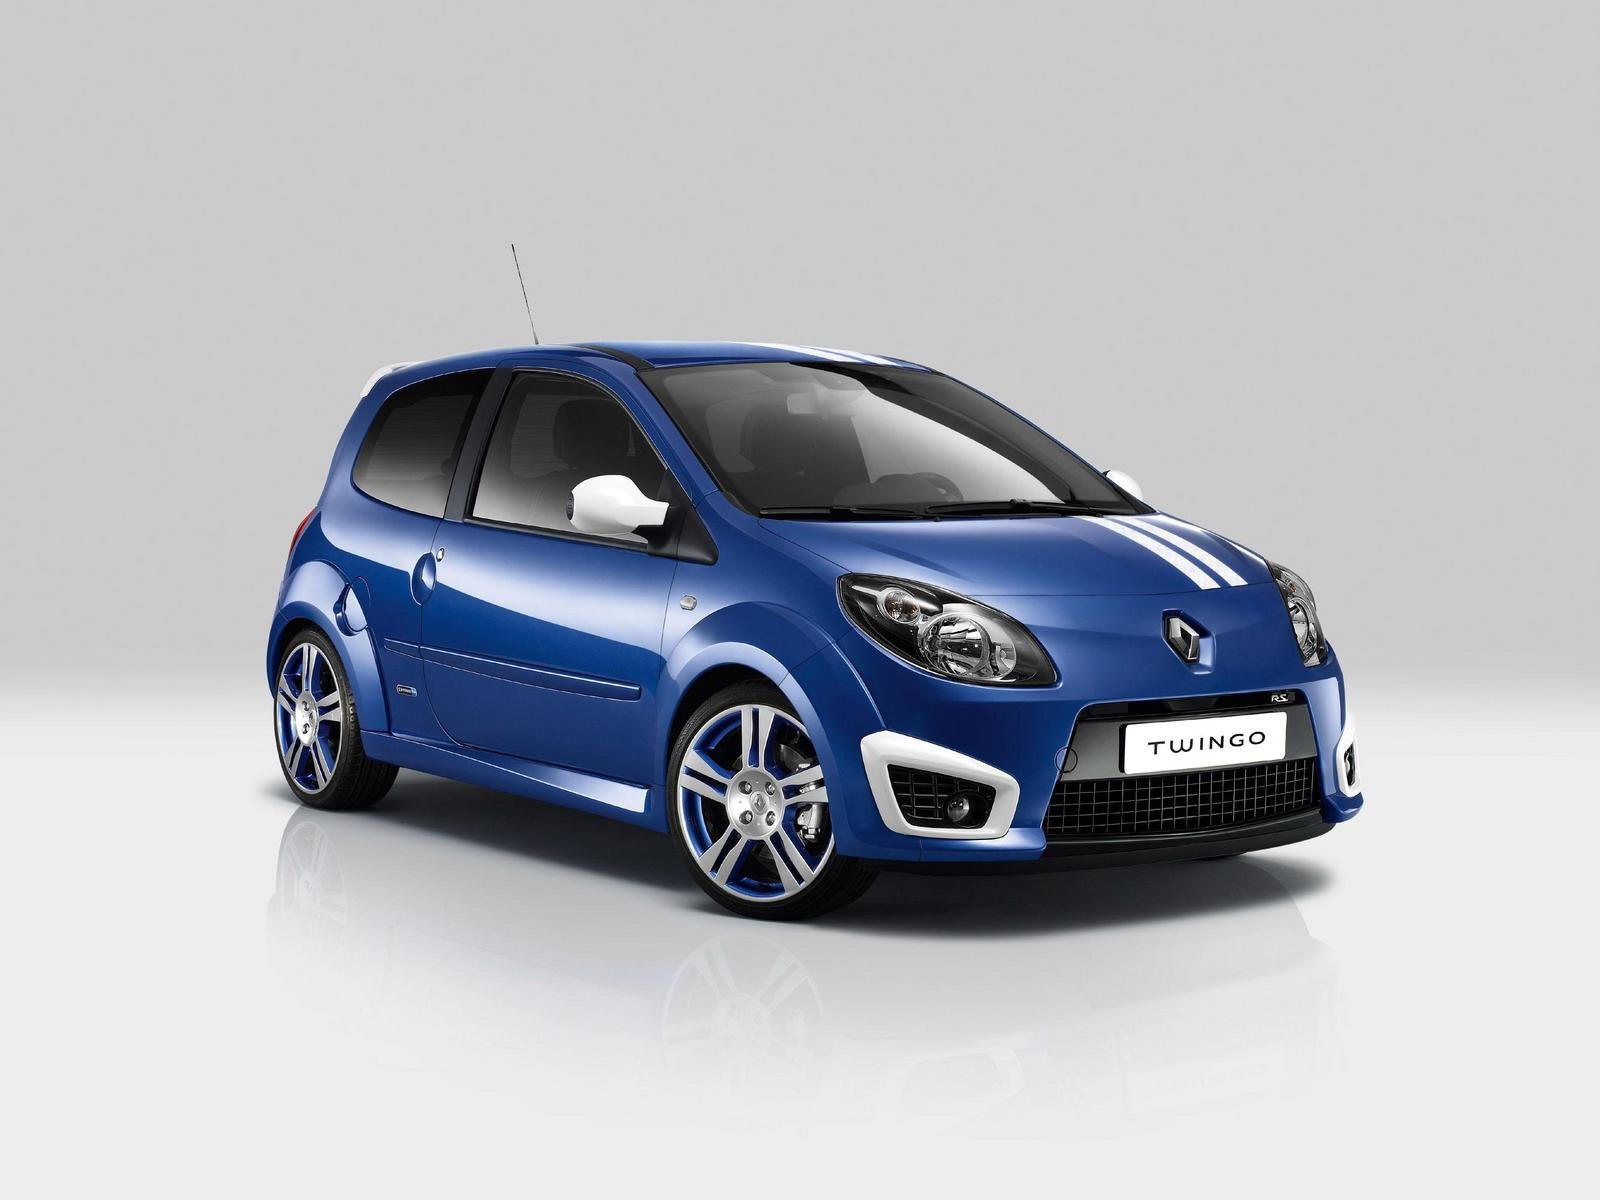 2010 renault twingo gordini r s picture 335145 car review top speed. Black Bedroom Furniture Sets. Home Design Ideas